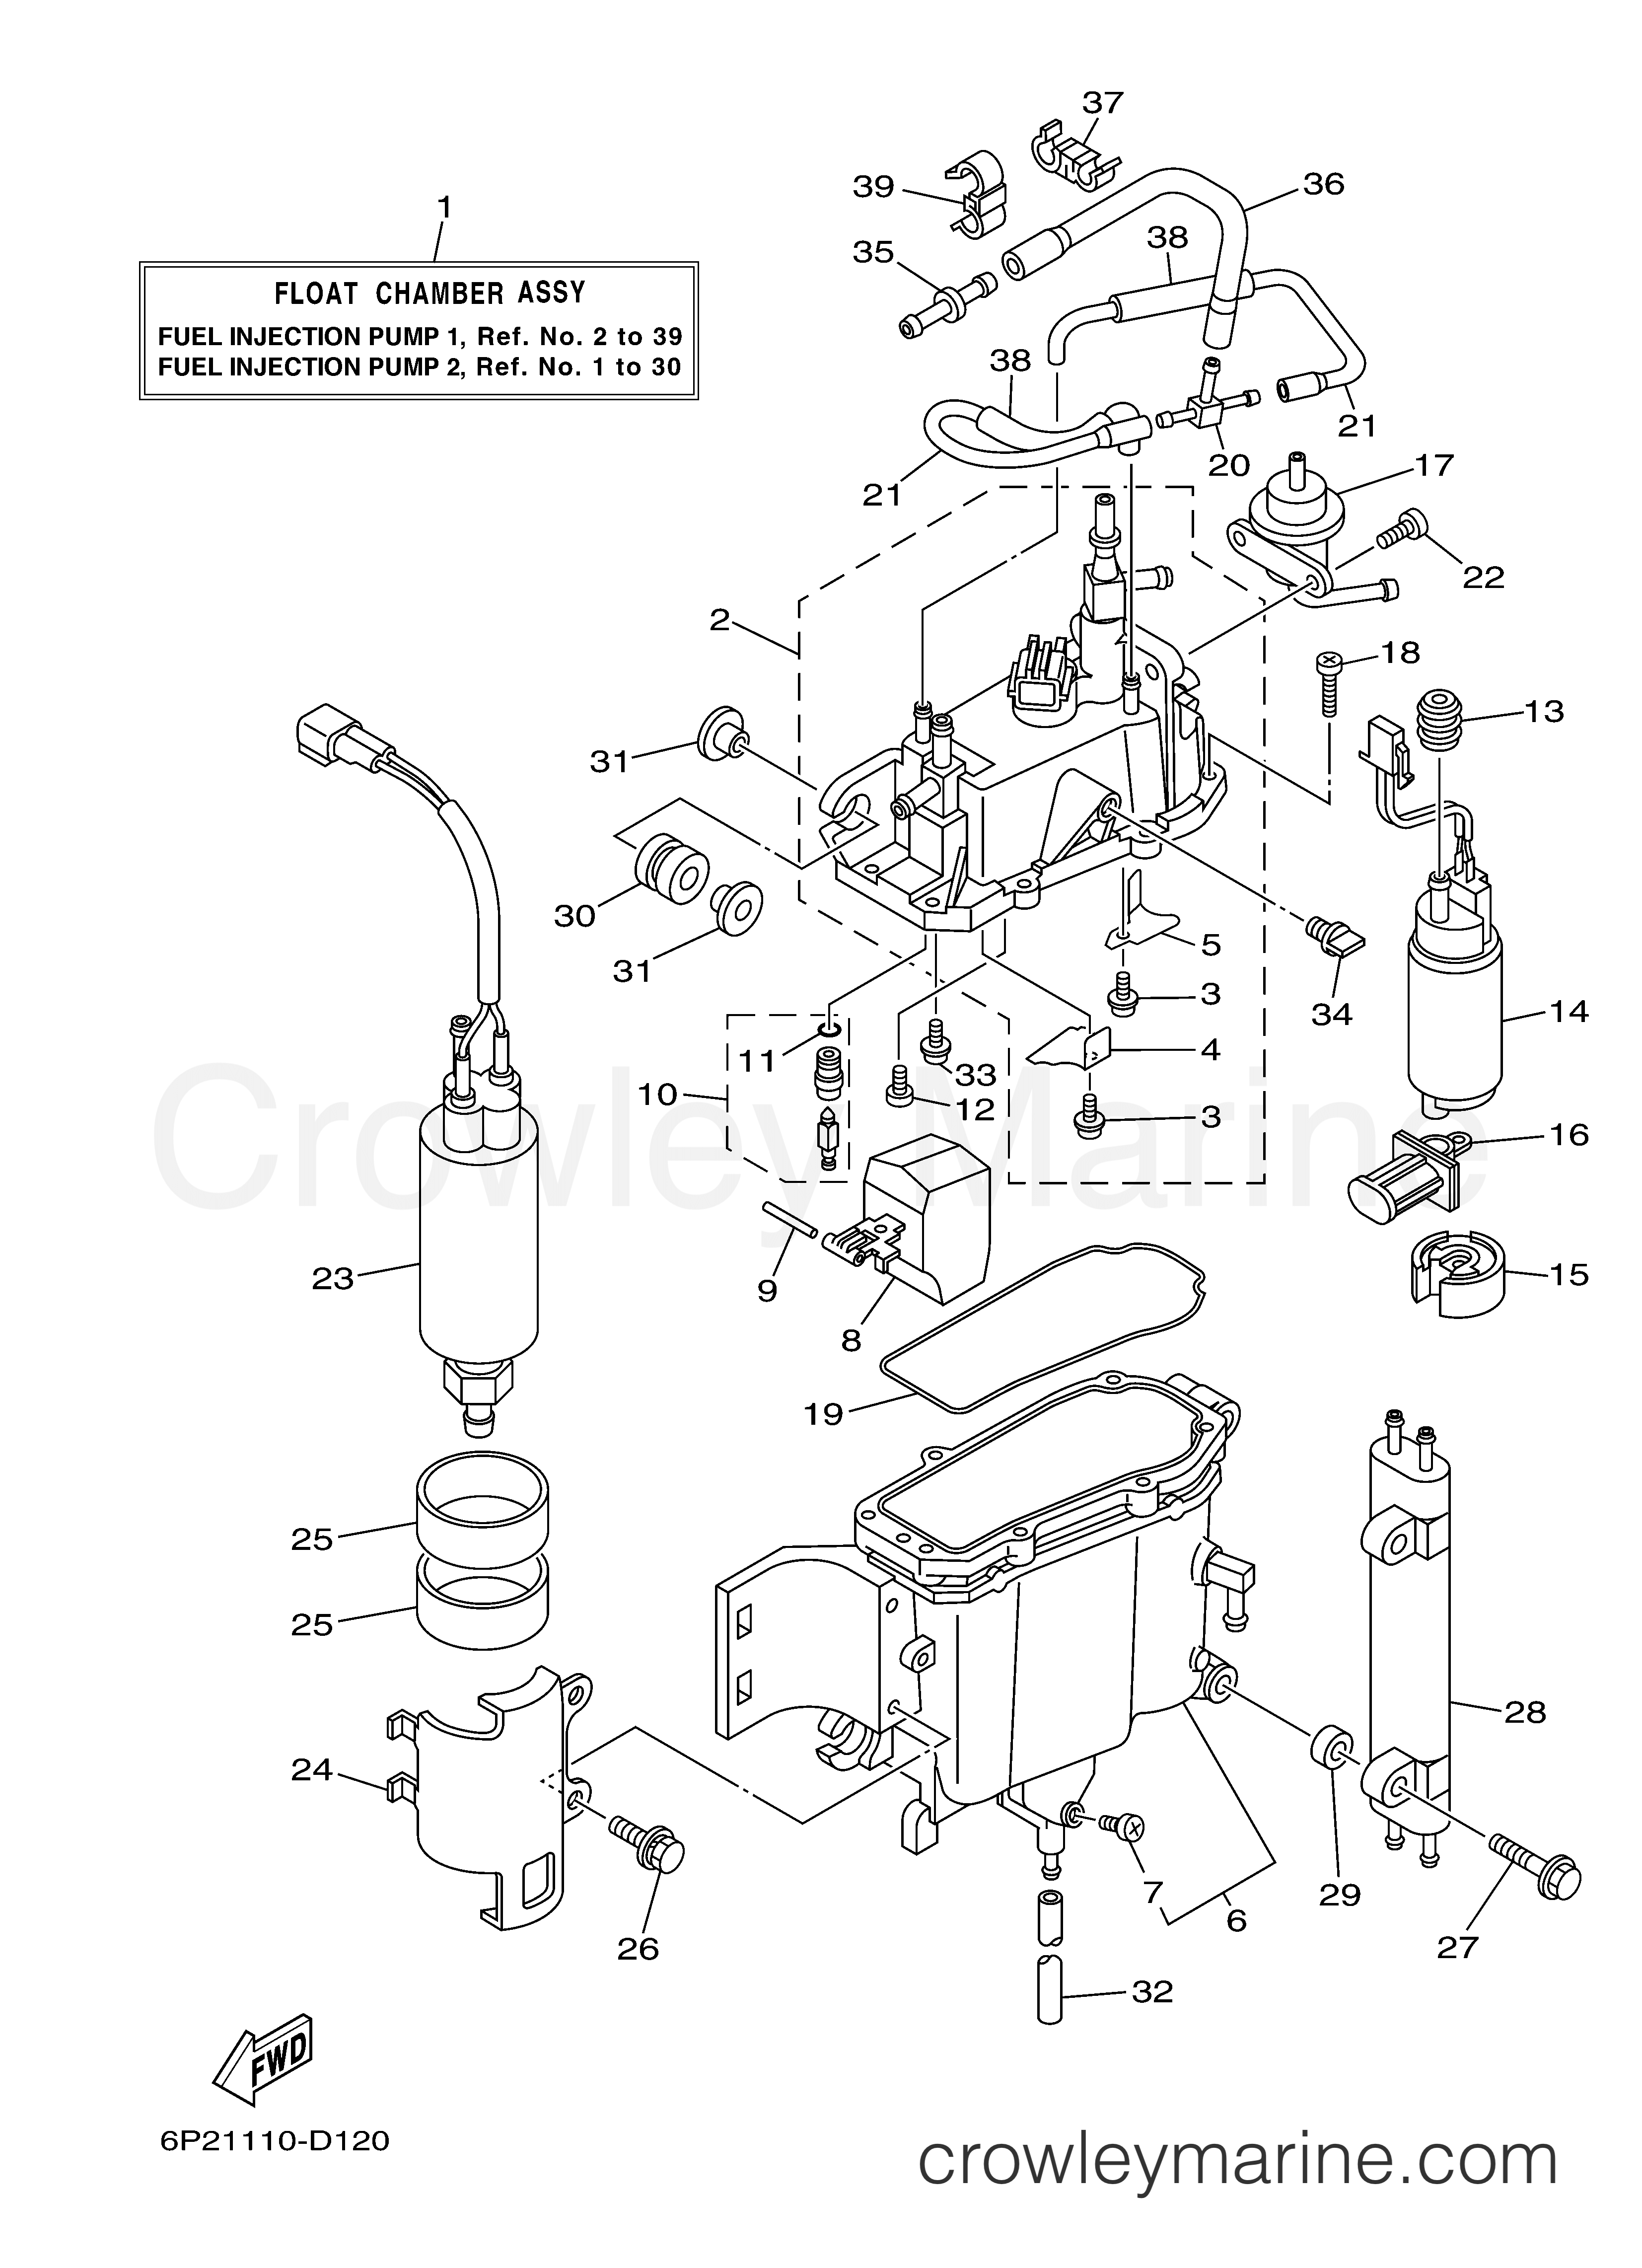 Diagram Of 2005 F90tjrd Yamaha Outboard Fuel Injection Pump 1 Diagram